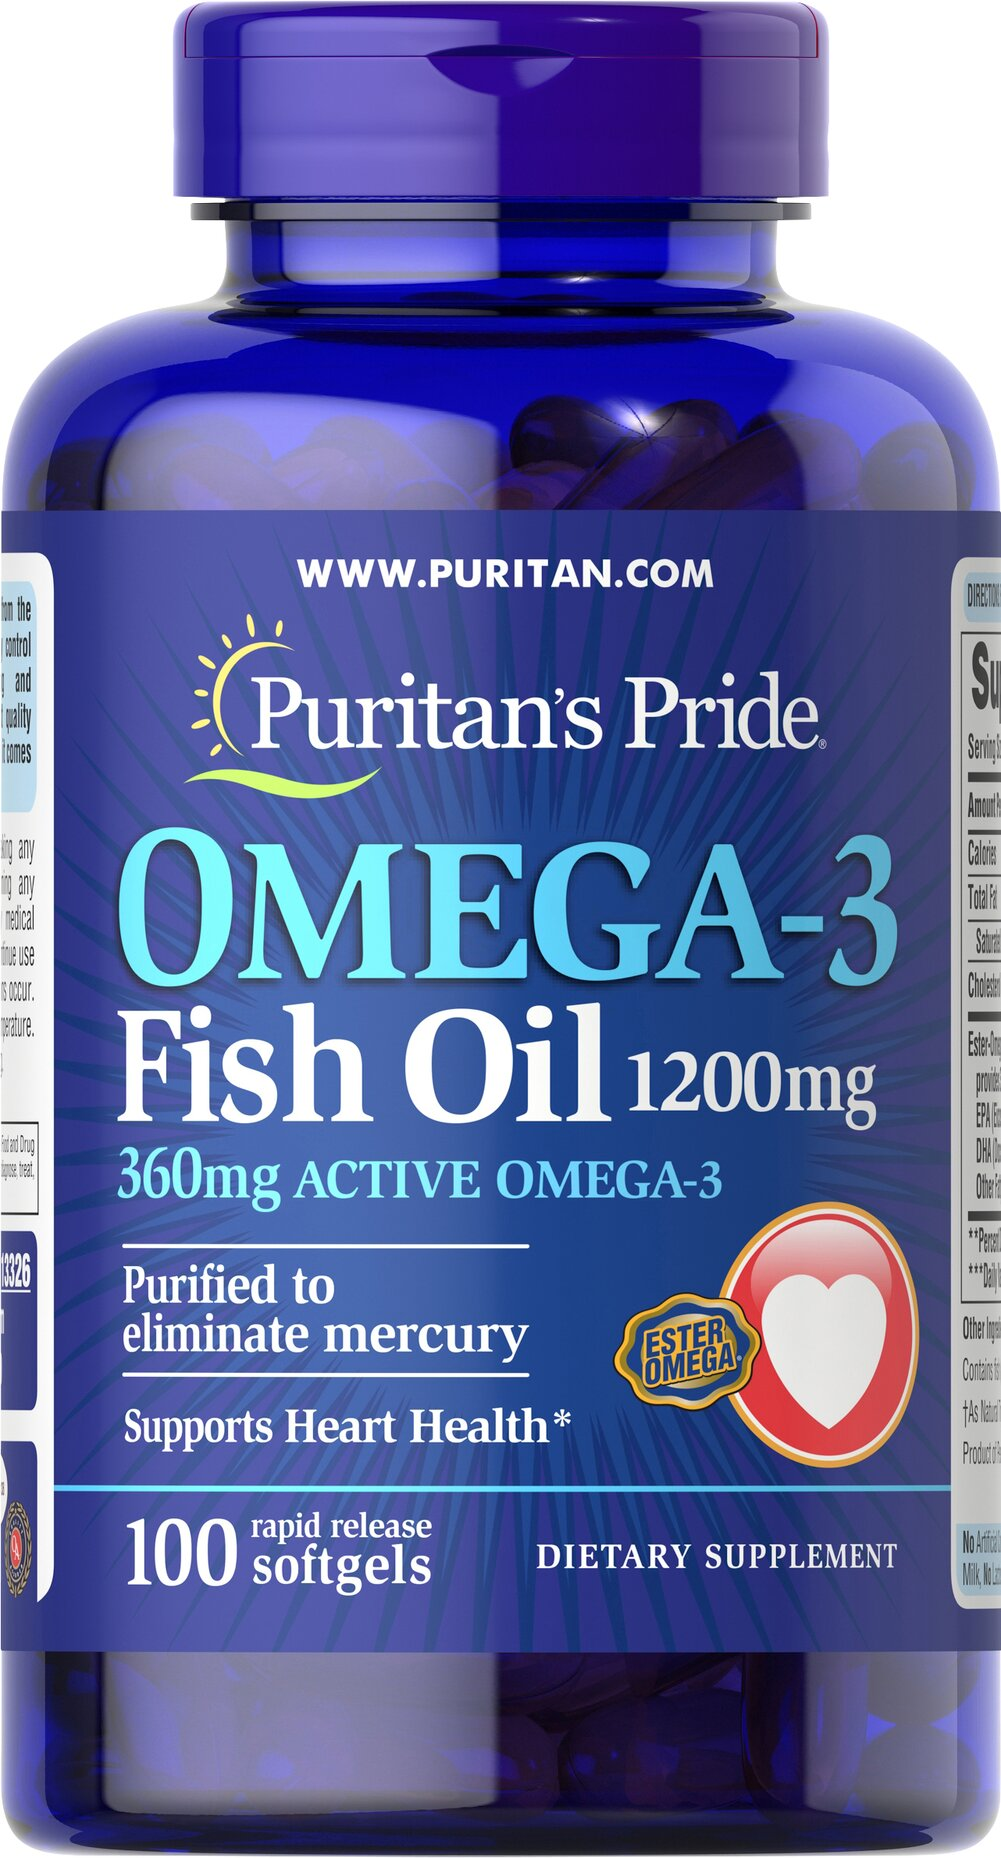 Omega-3 Fish Oil 1200 mg (360 mg Active Omega-3) <p><span></span></p>This Ester-Omega® Fish Oil provides 360mg of total omega-3 fatty acids, comprising of EPA, DHA and other fatty acids. EPA and DHA fatty acids support heart health.** Purified to eliminate mercury. Rapid release softgels. 100 Softgels 1200 mg $11.49